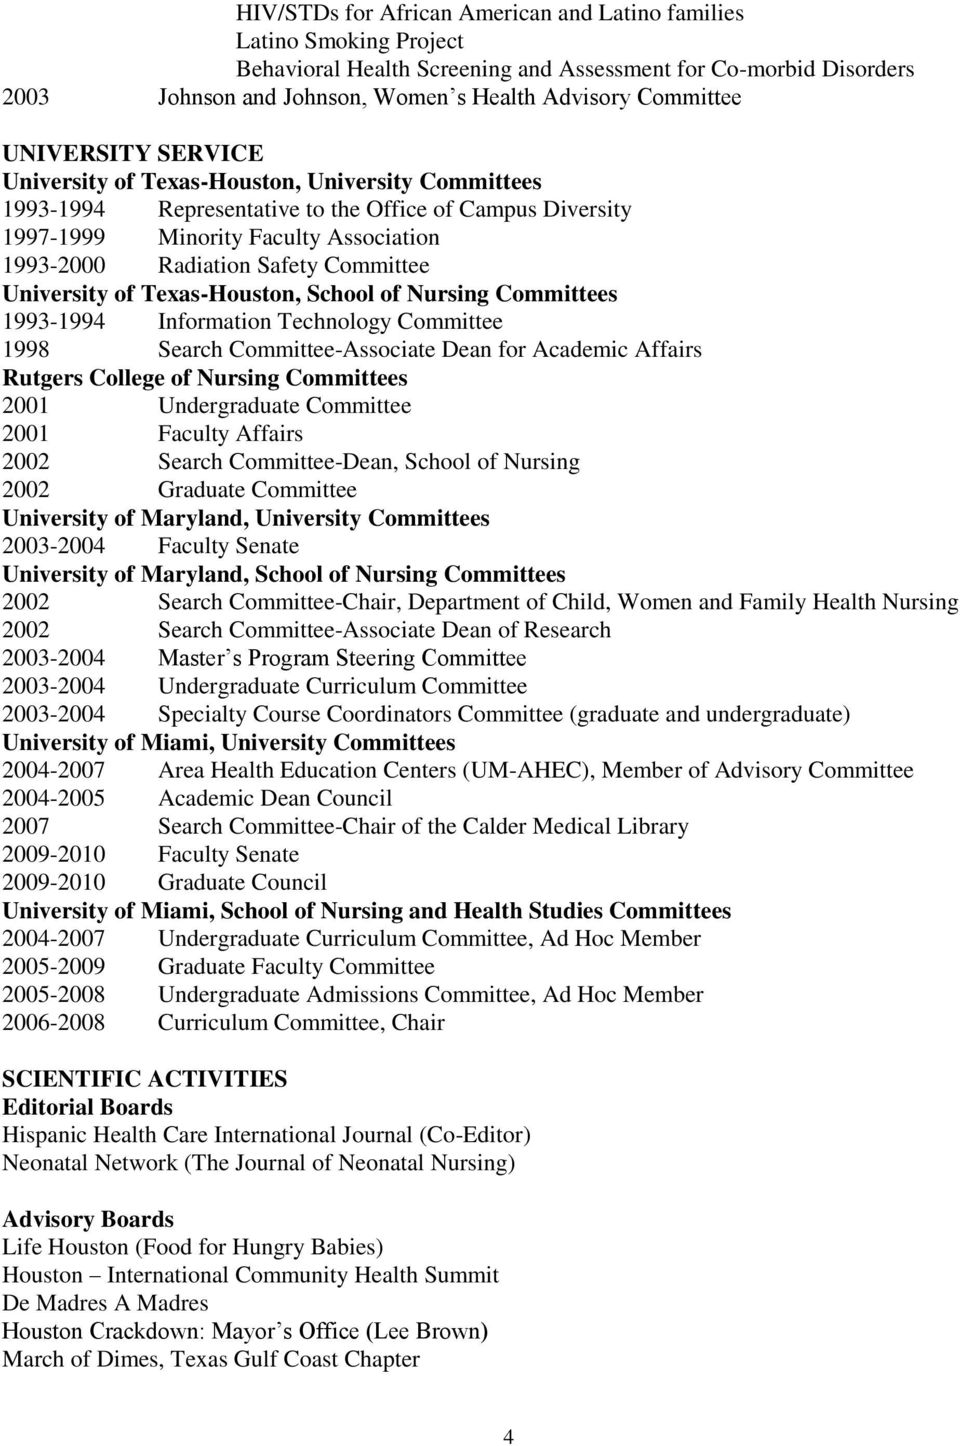 Committee University of Texas-Houston, School of Nursing Committees 1993-1994 Information Technology Committee 1998 Search Committee-Associate Dean for Academic Affairs Rutgers College of Nursing